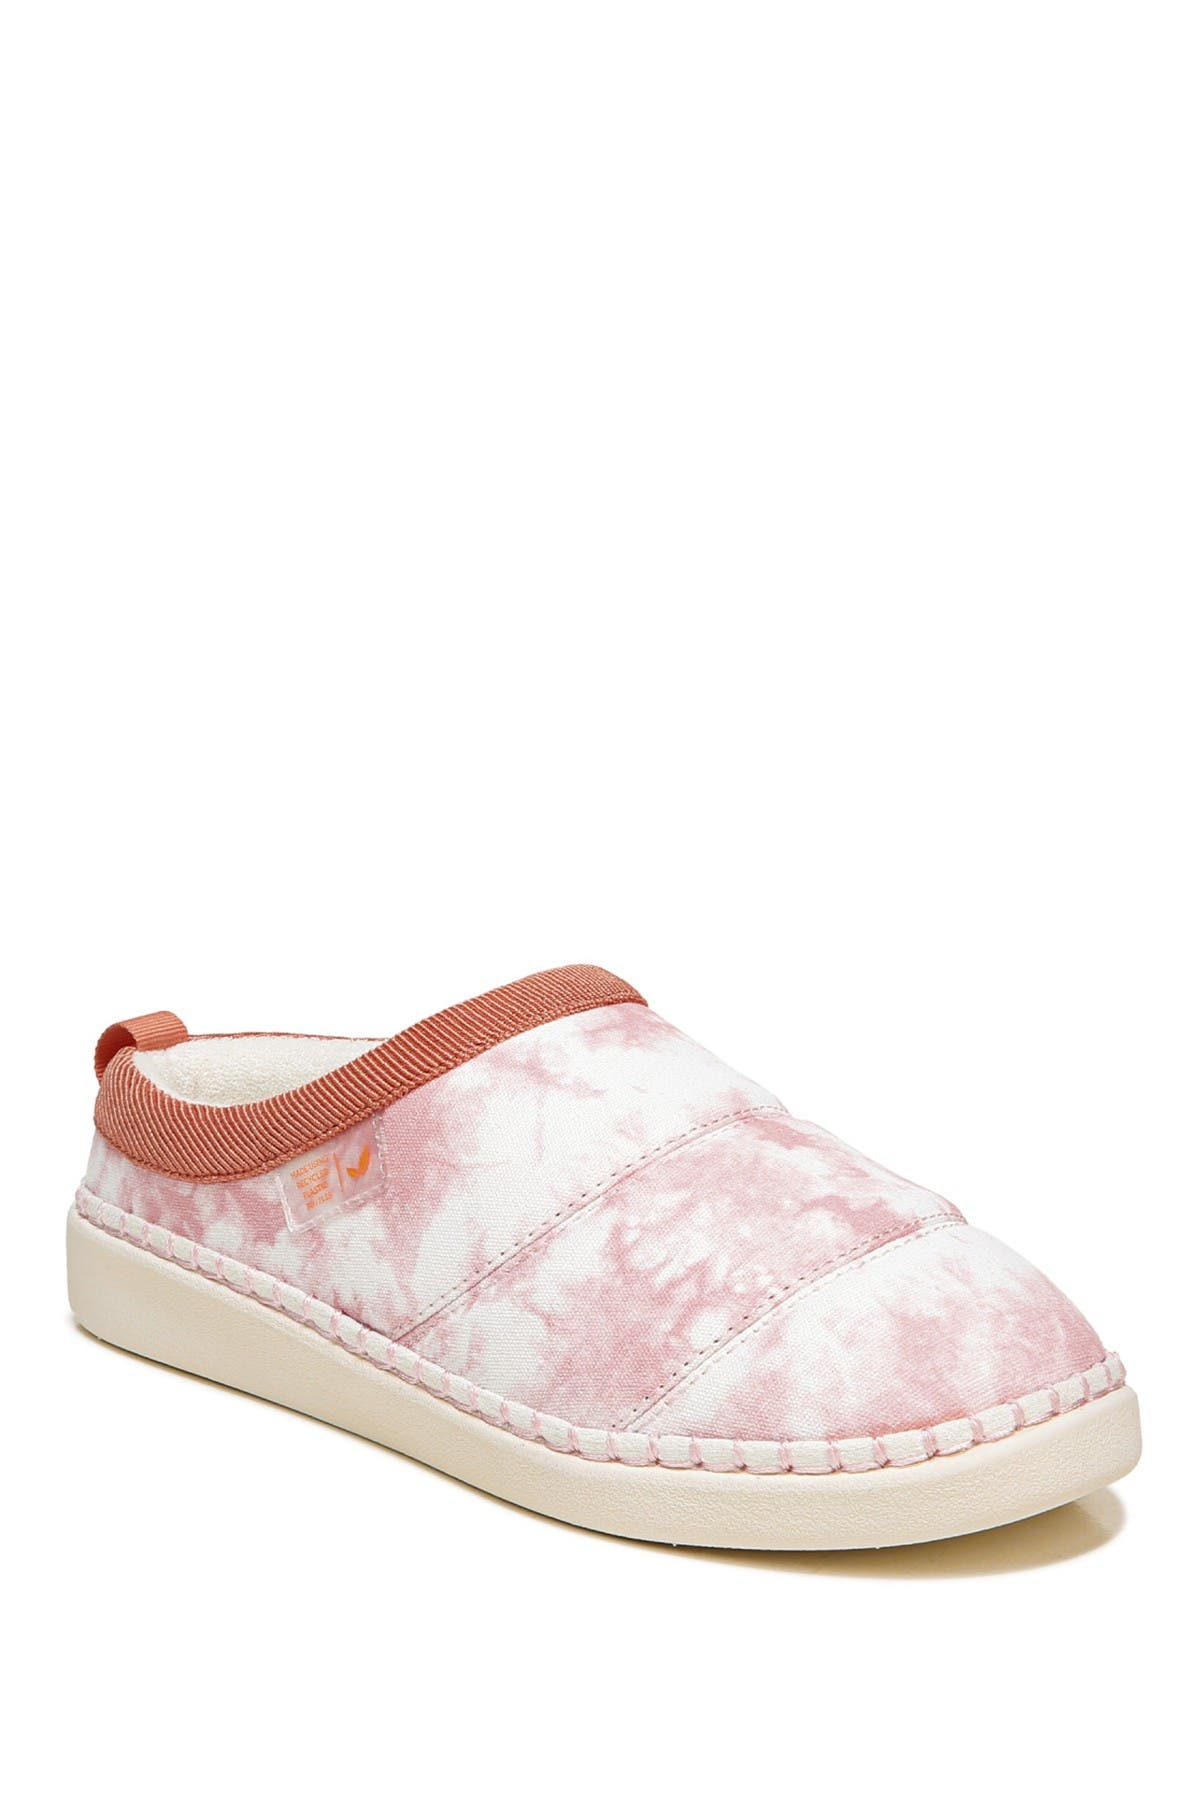 Image of Dr. Scholl's Cozy Vibes Slipper